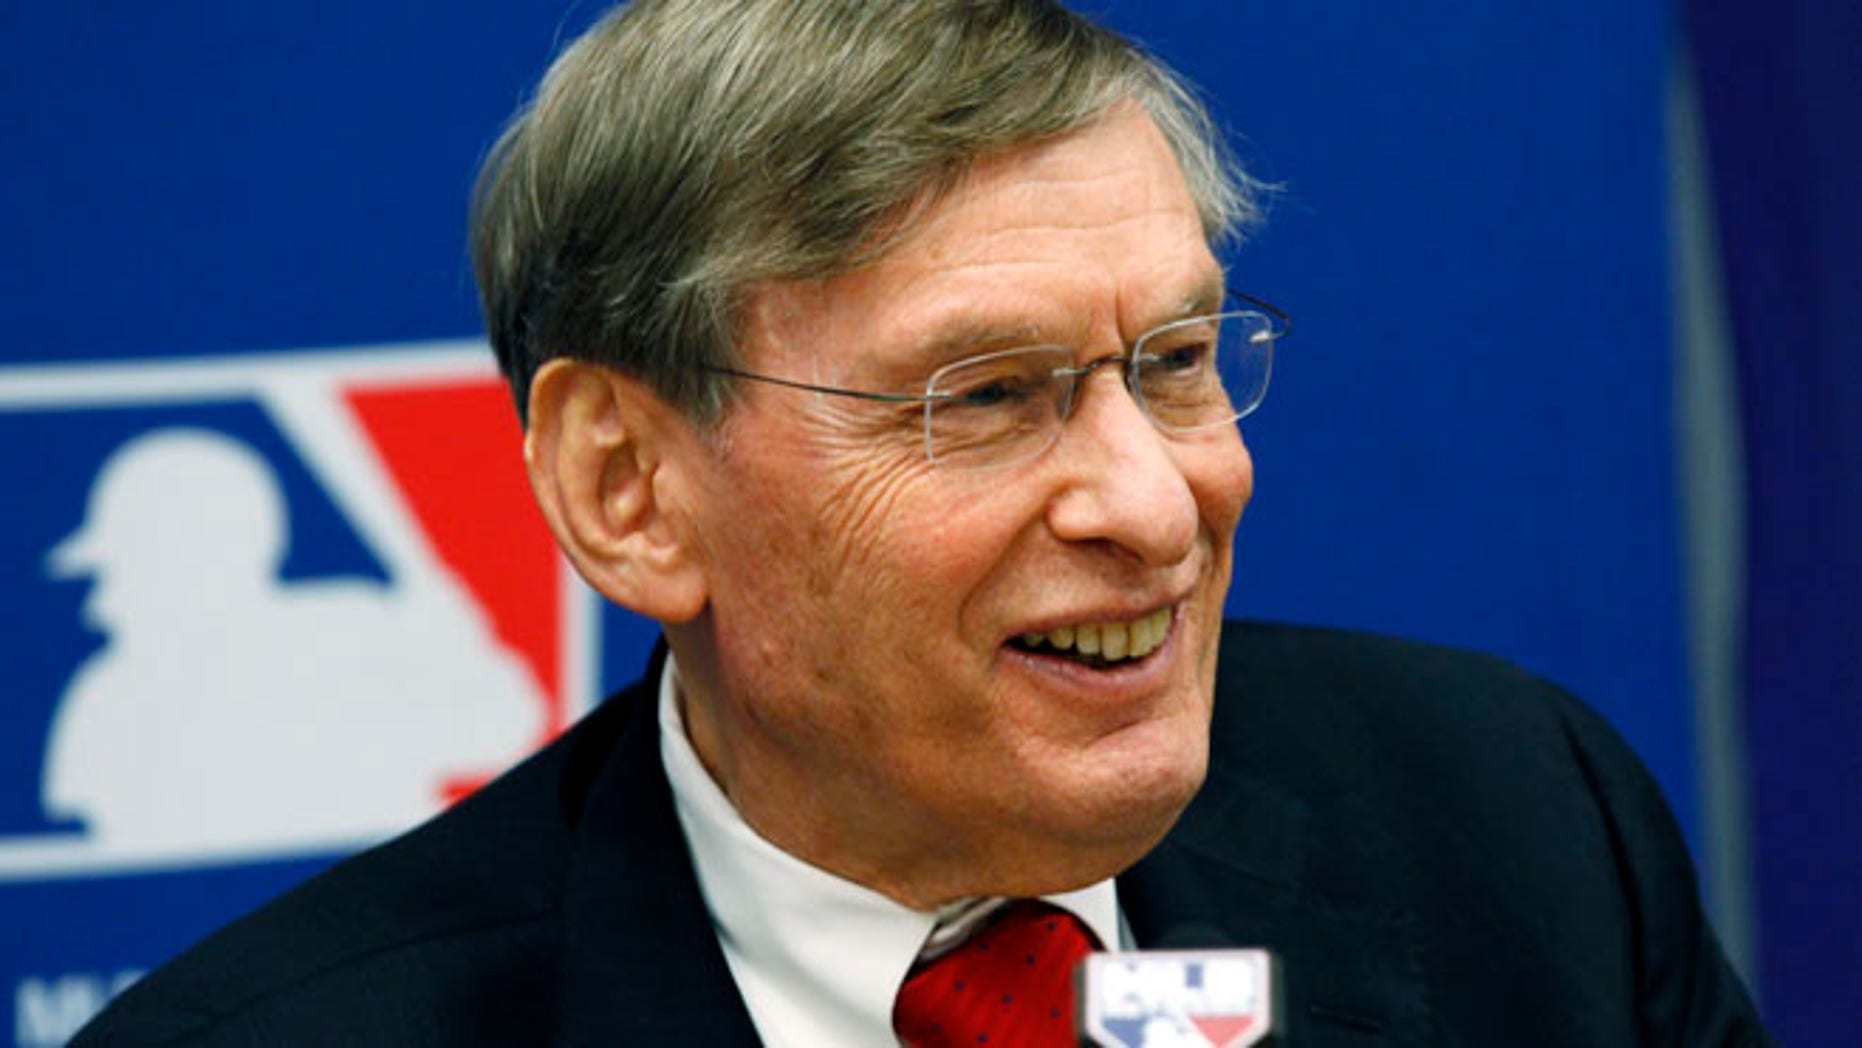 FILE 2011: Major League Baseball Commissioner Bud Selig speaks at a news conference in New York.